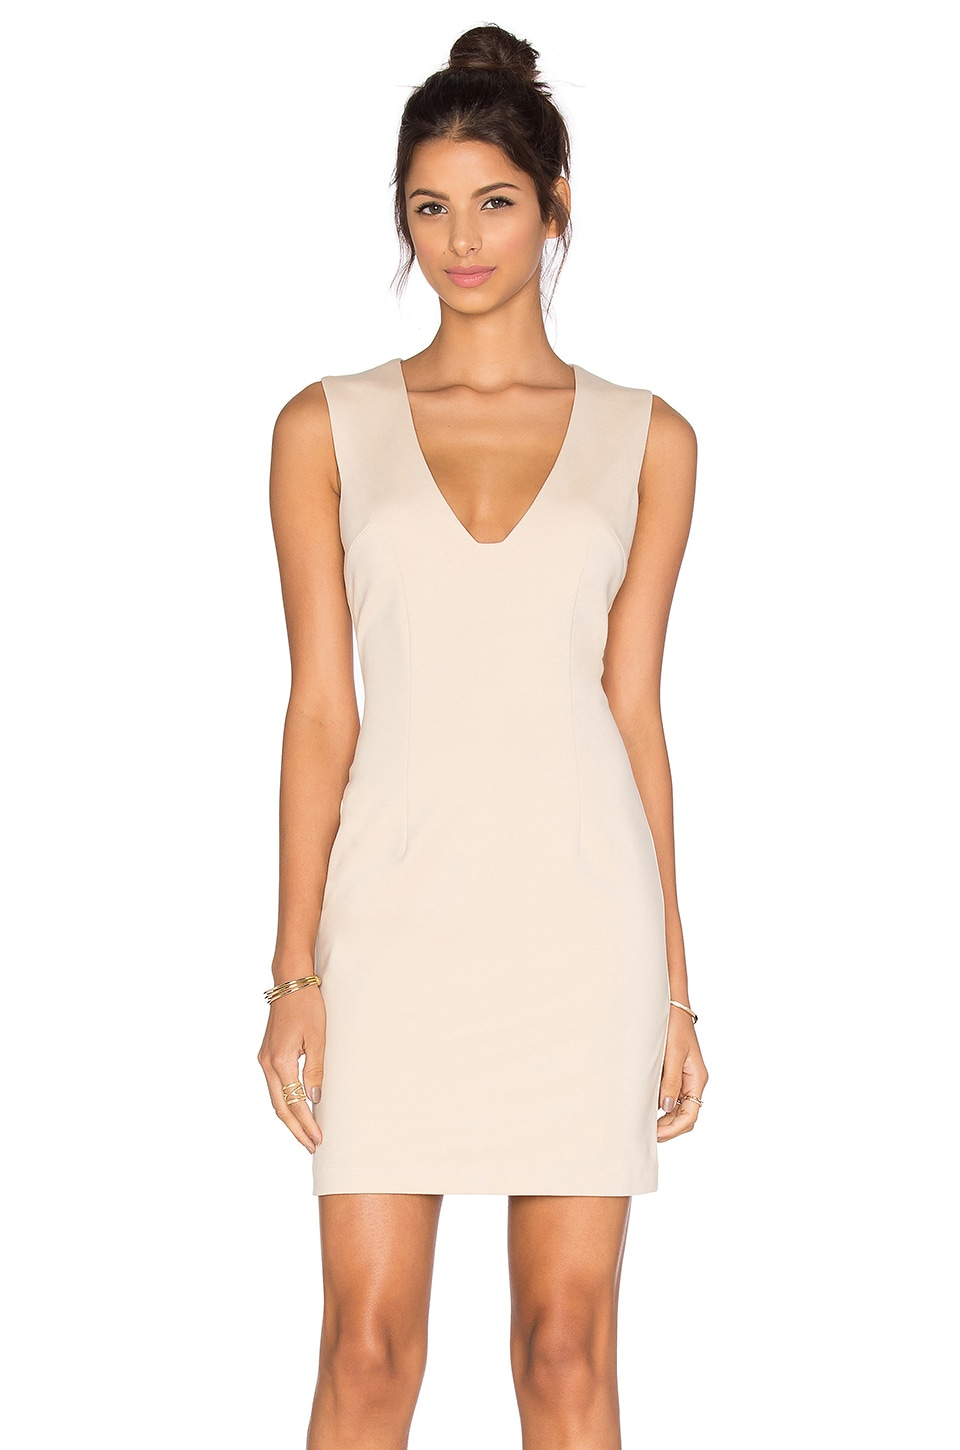 BLAQUE LABEL Plunging Neckline Mini Dress in Sand